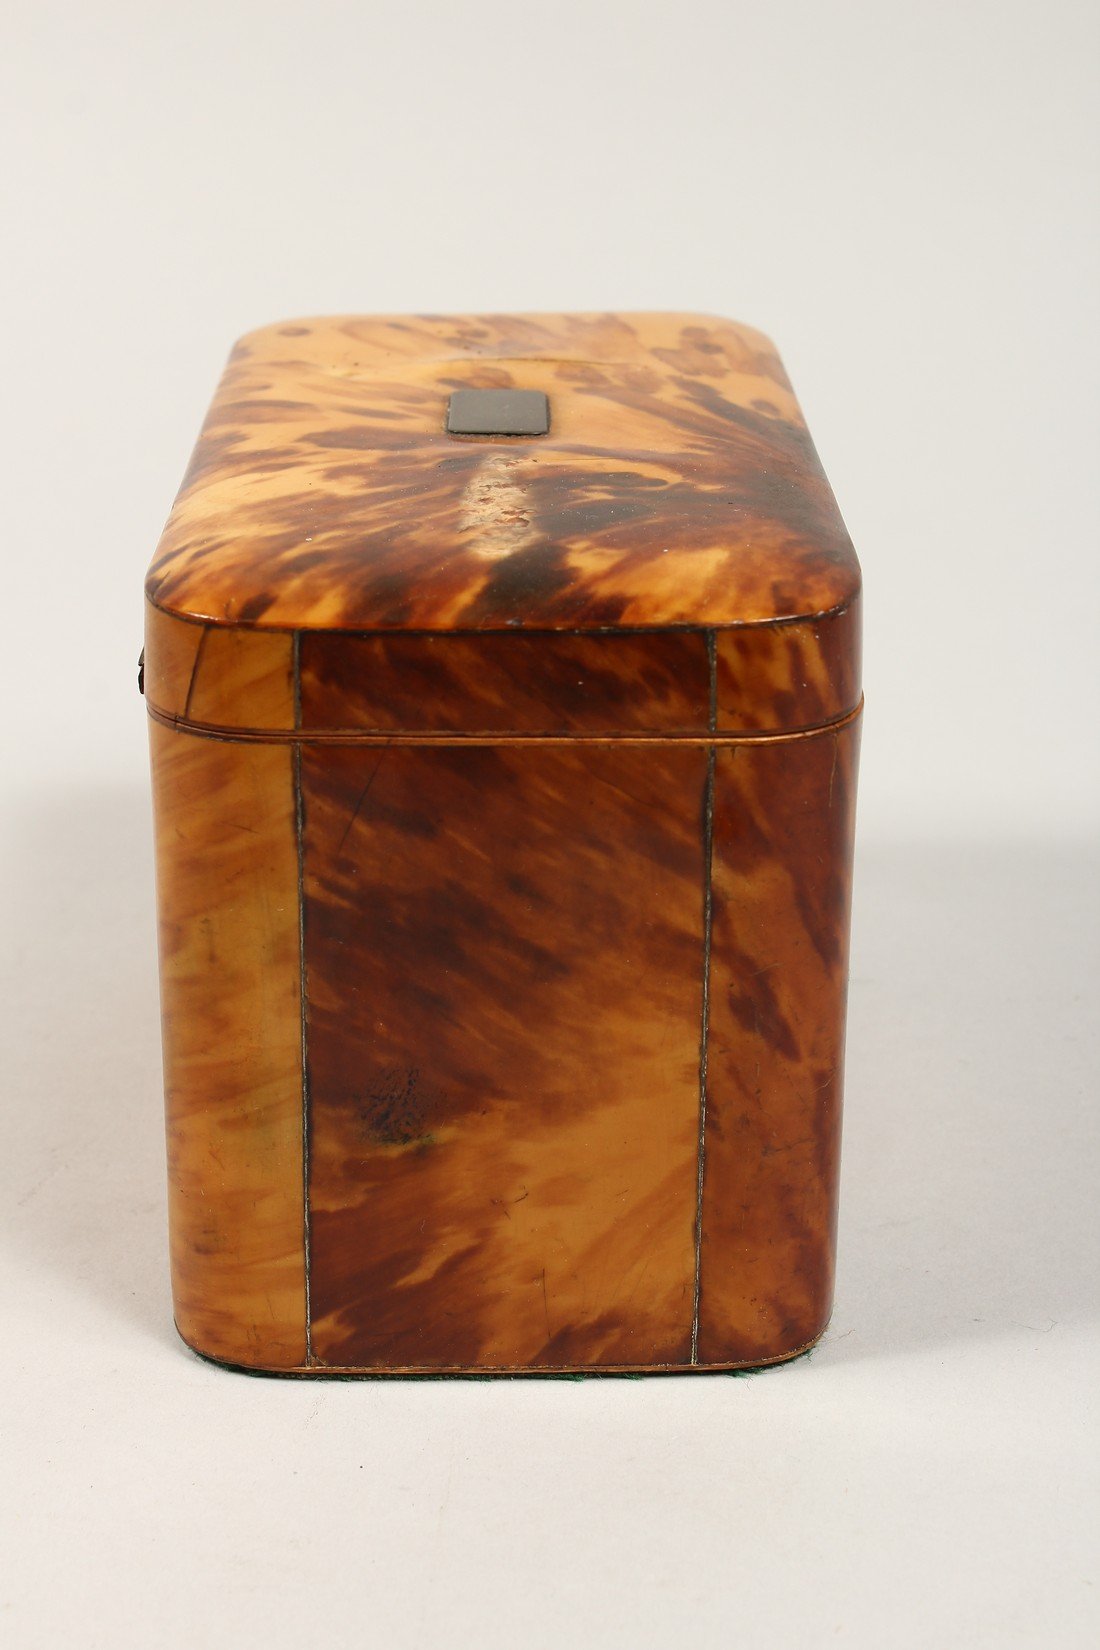 A GOOD REGENCY TORTOISESHELL TWO DIVISION TEA CADDY of rectangular form. 6.75ins high. - Image 4 of 7